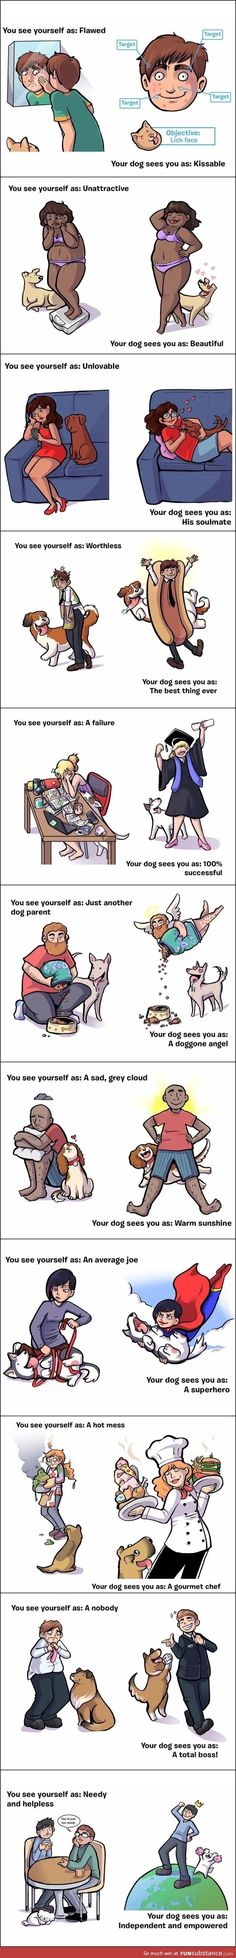 Dogs love unconditionally <3